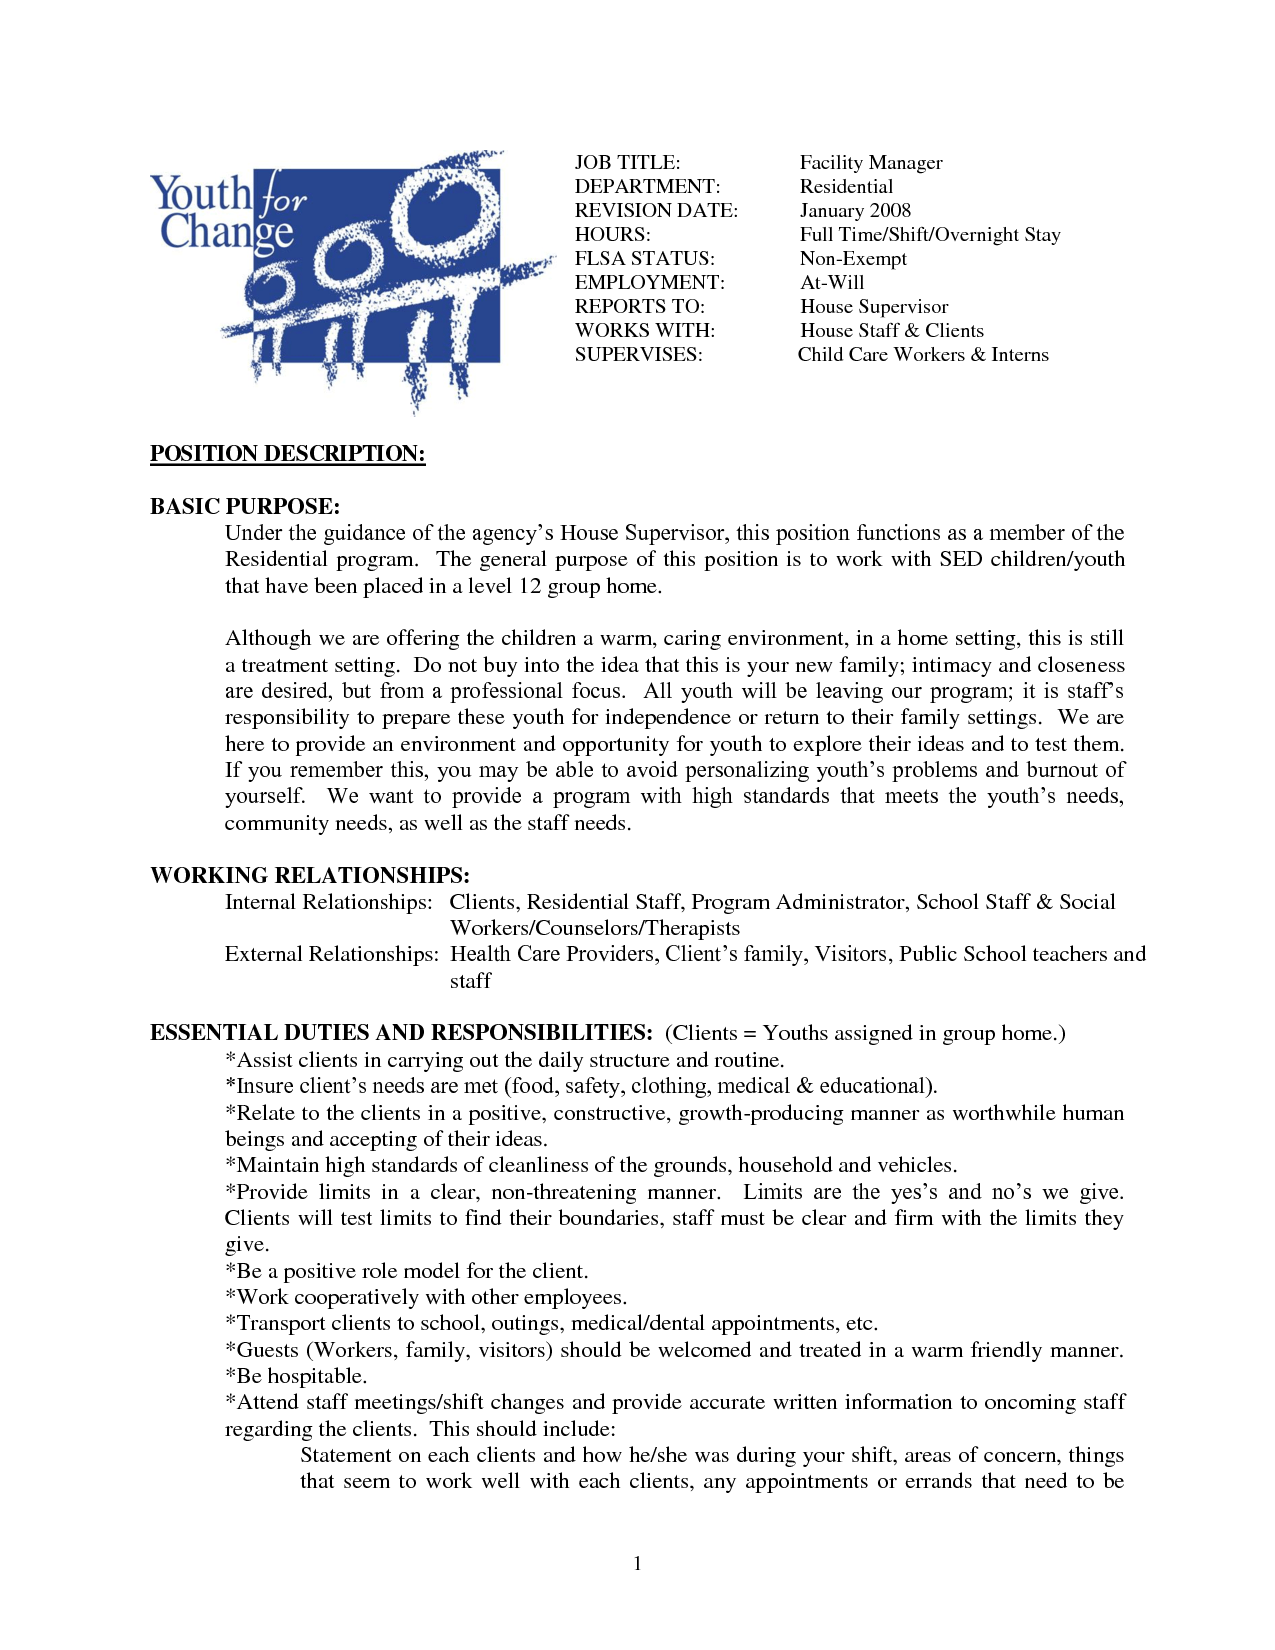 resume description for house cleaner sample customer service resume resume description for house cleaner cleaner resume template sample dayjob cleaning business resume and job description